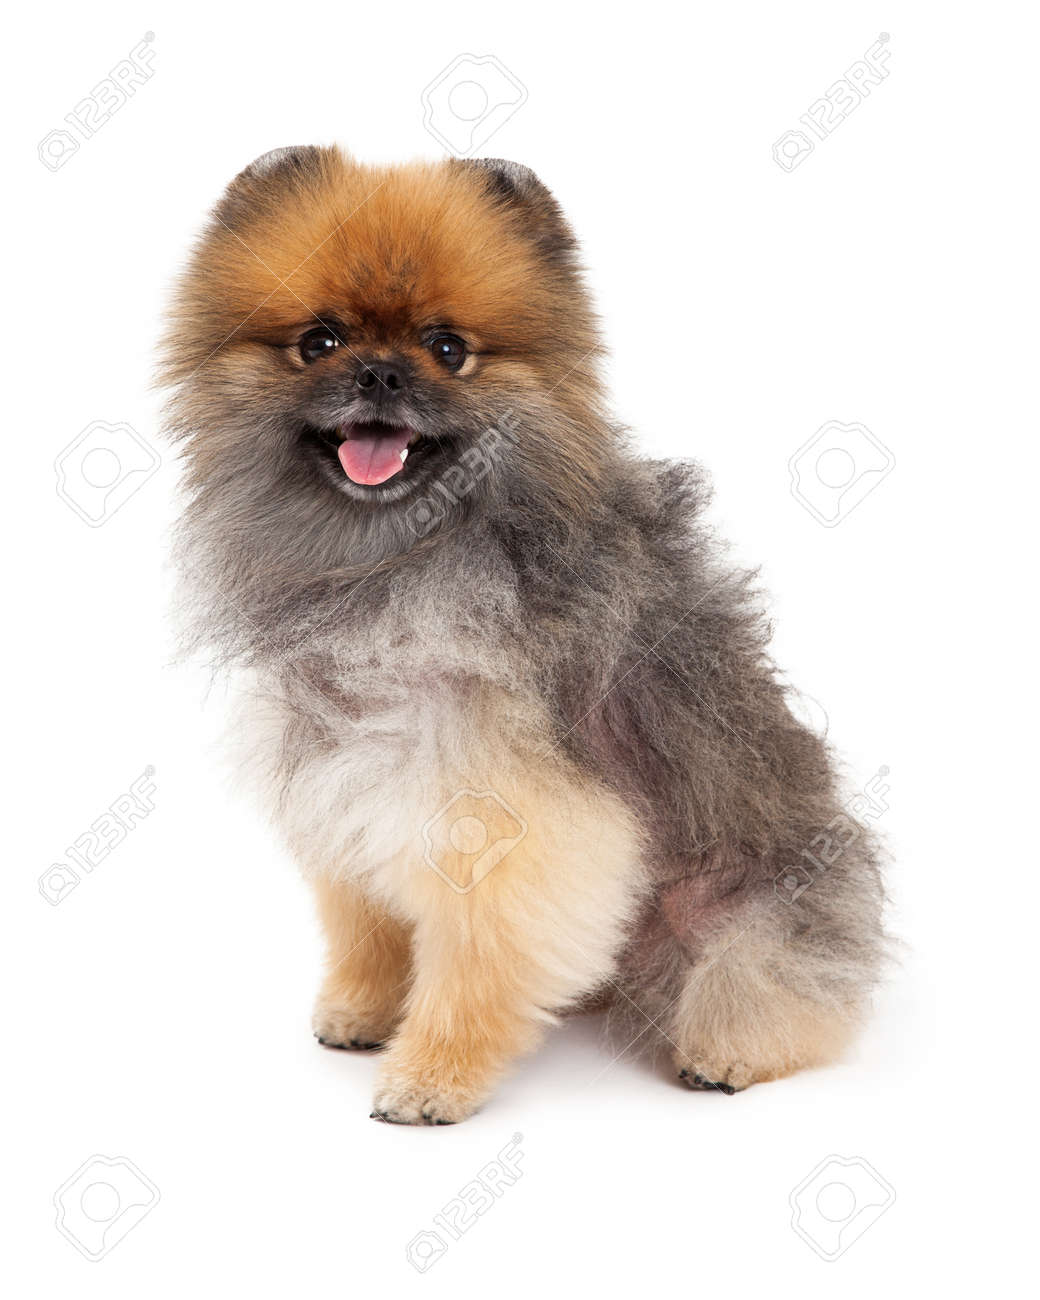 An Attentive Pomeranian Dog Sitting At An Angle With Open Mouth